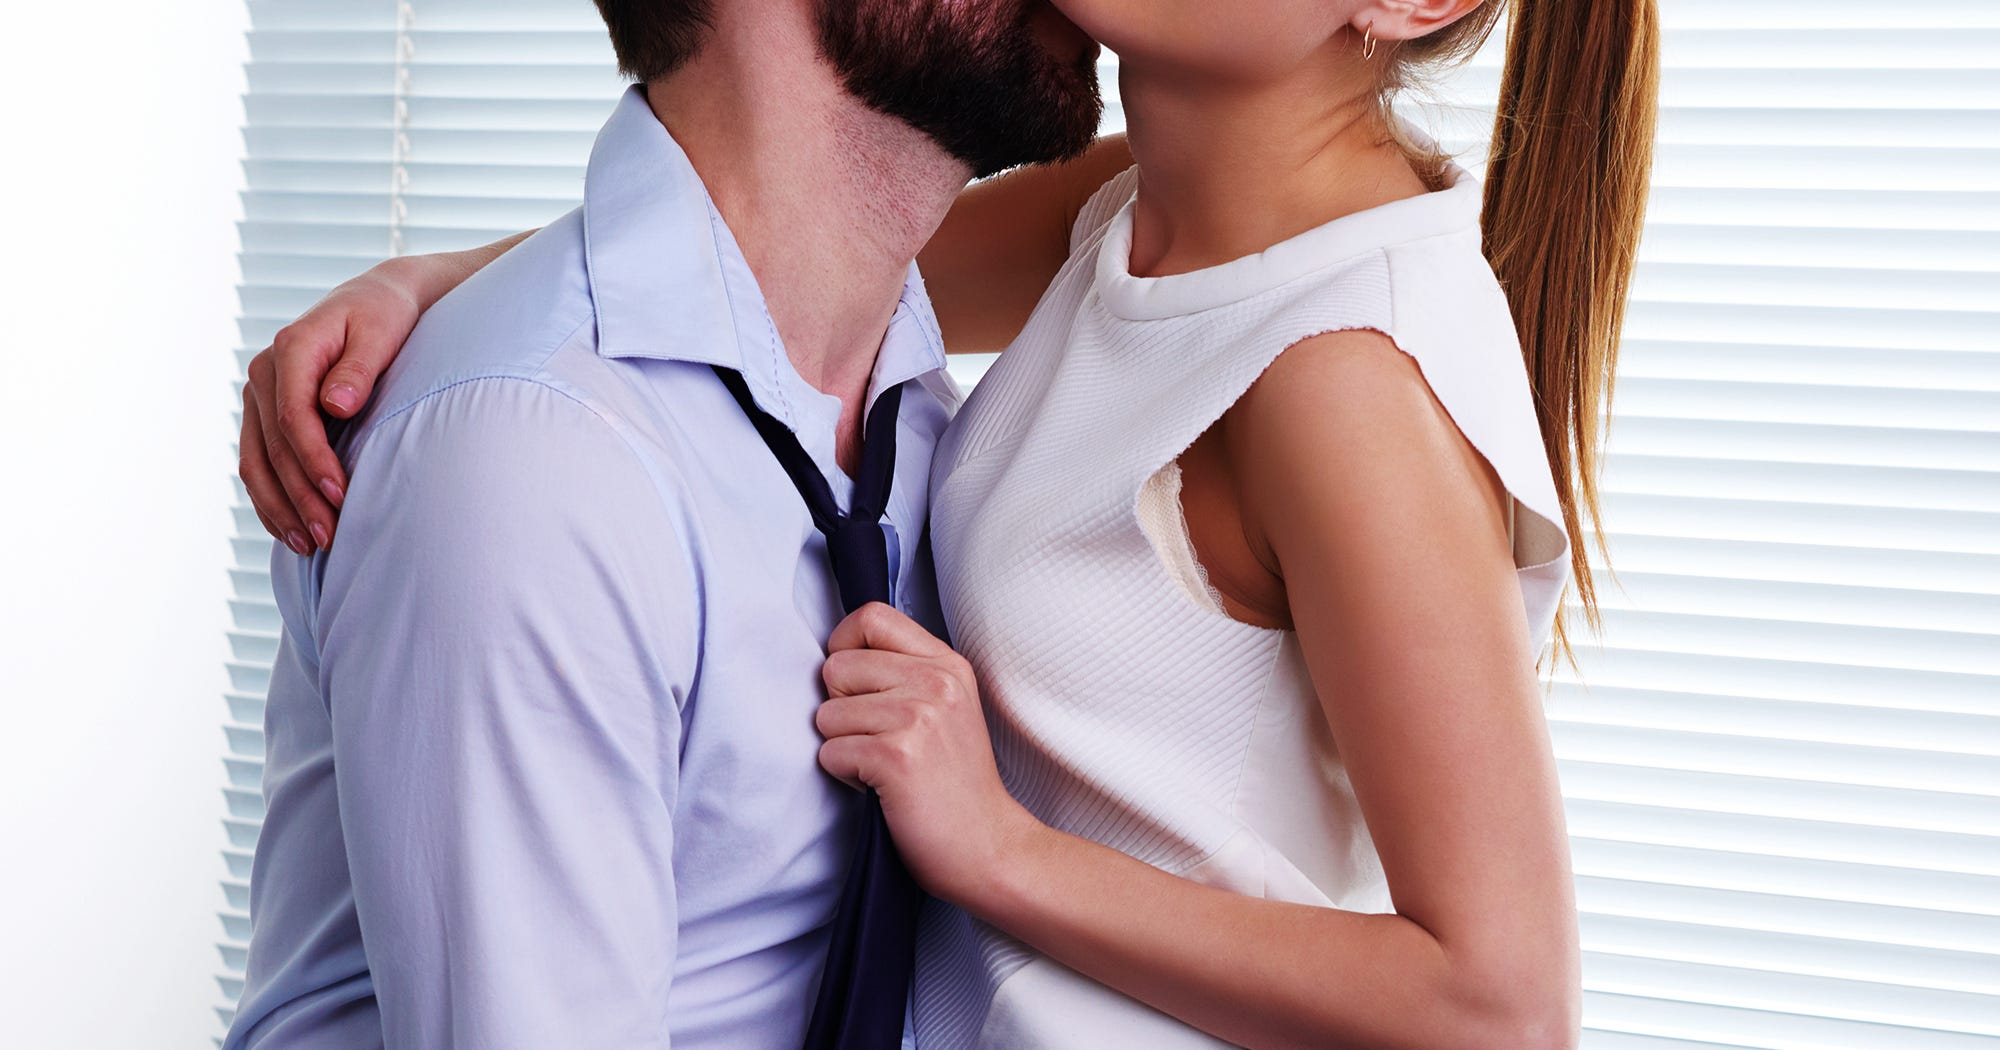 Hook up with a married coworker